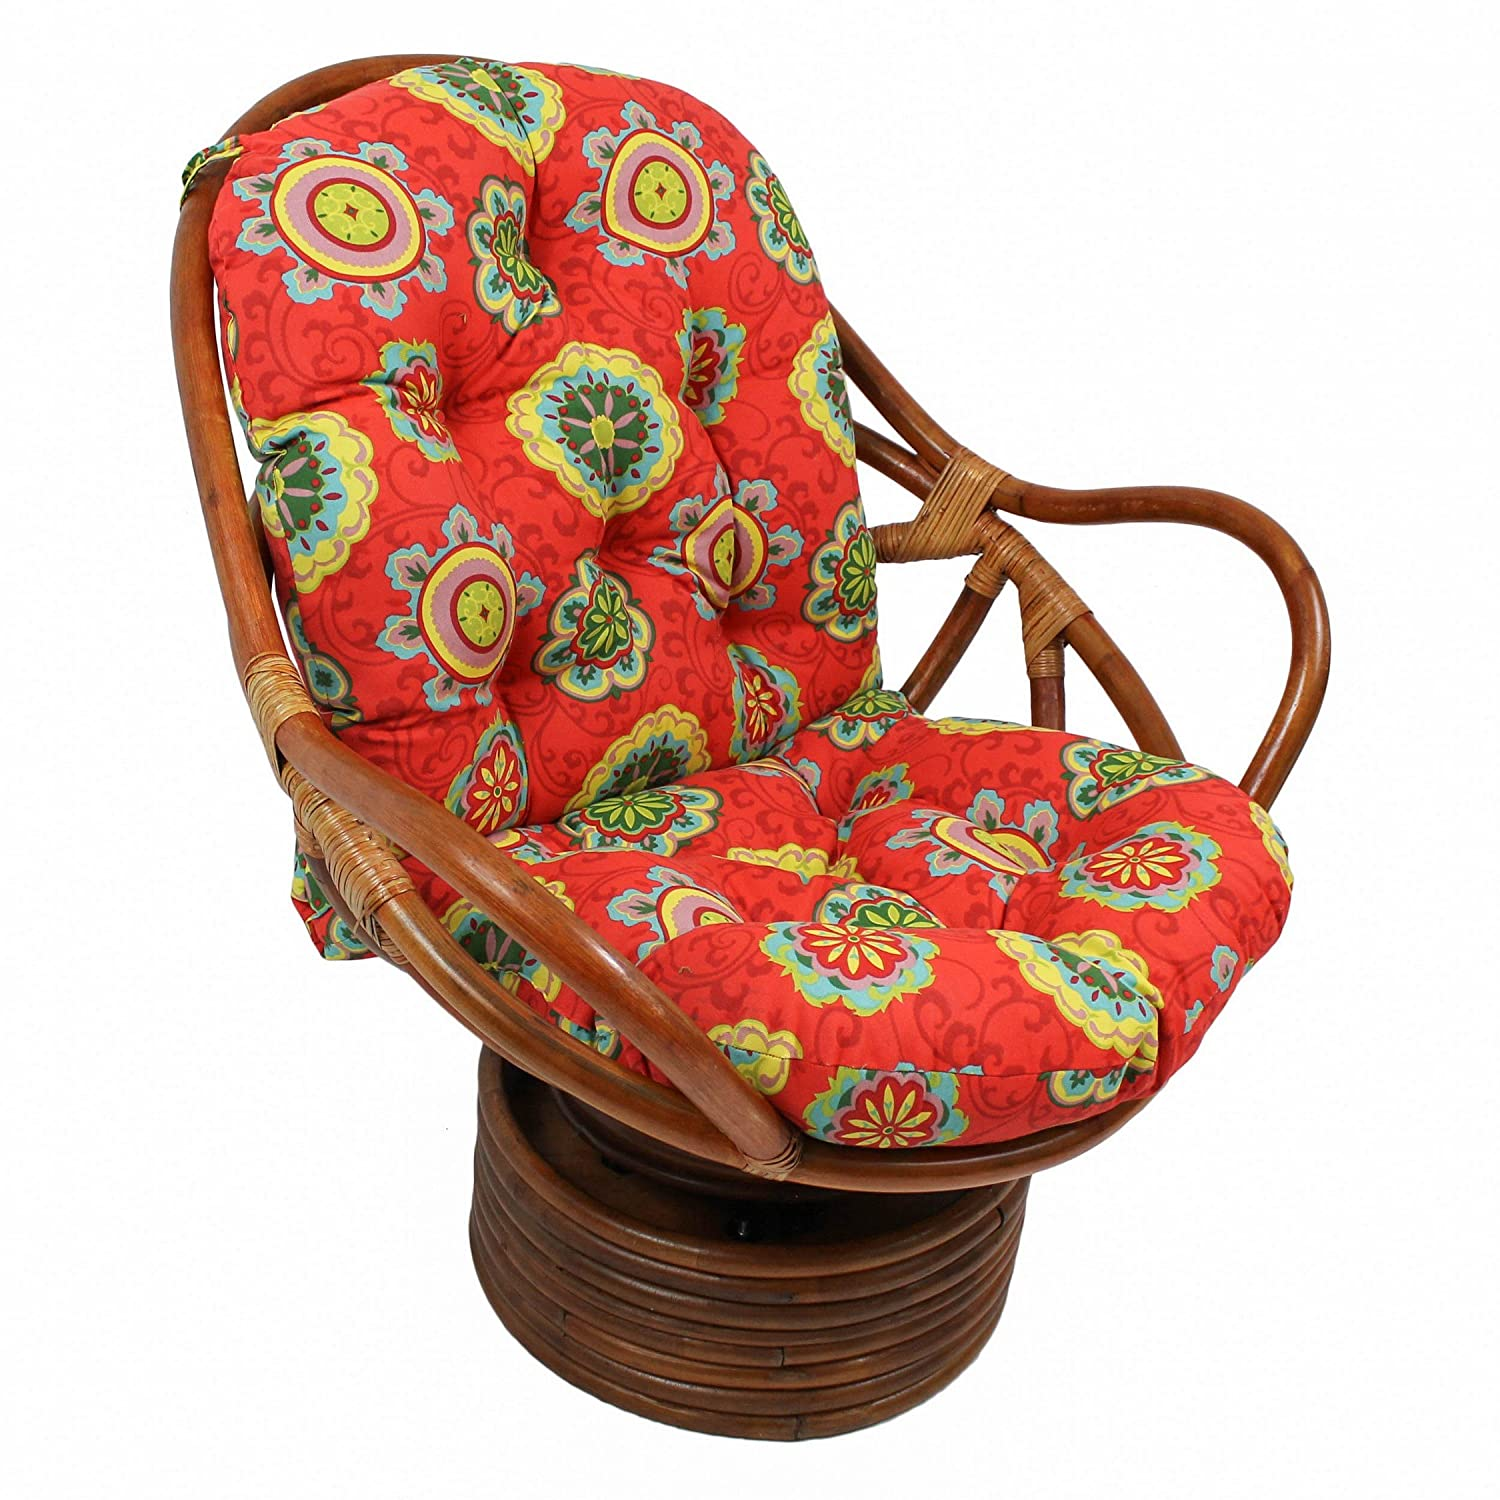 Blazing Needles Patterned Outdoor Spun Polyester Swivel Rocker Cushion, 48 x 24 , Farrington Terrace Grenadine